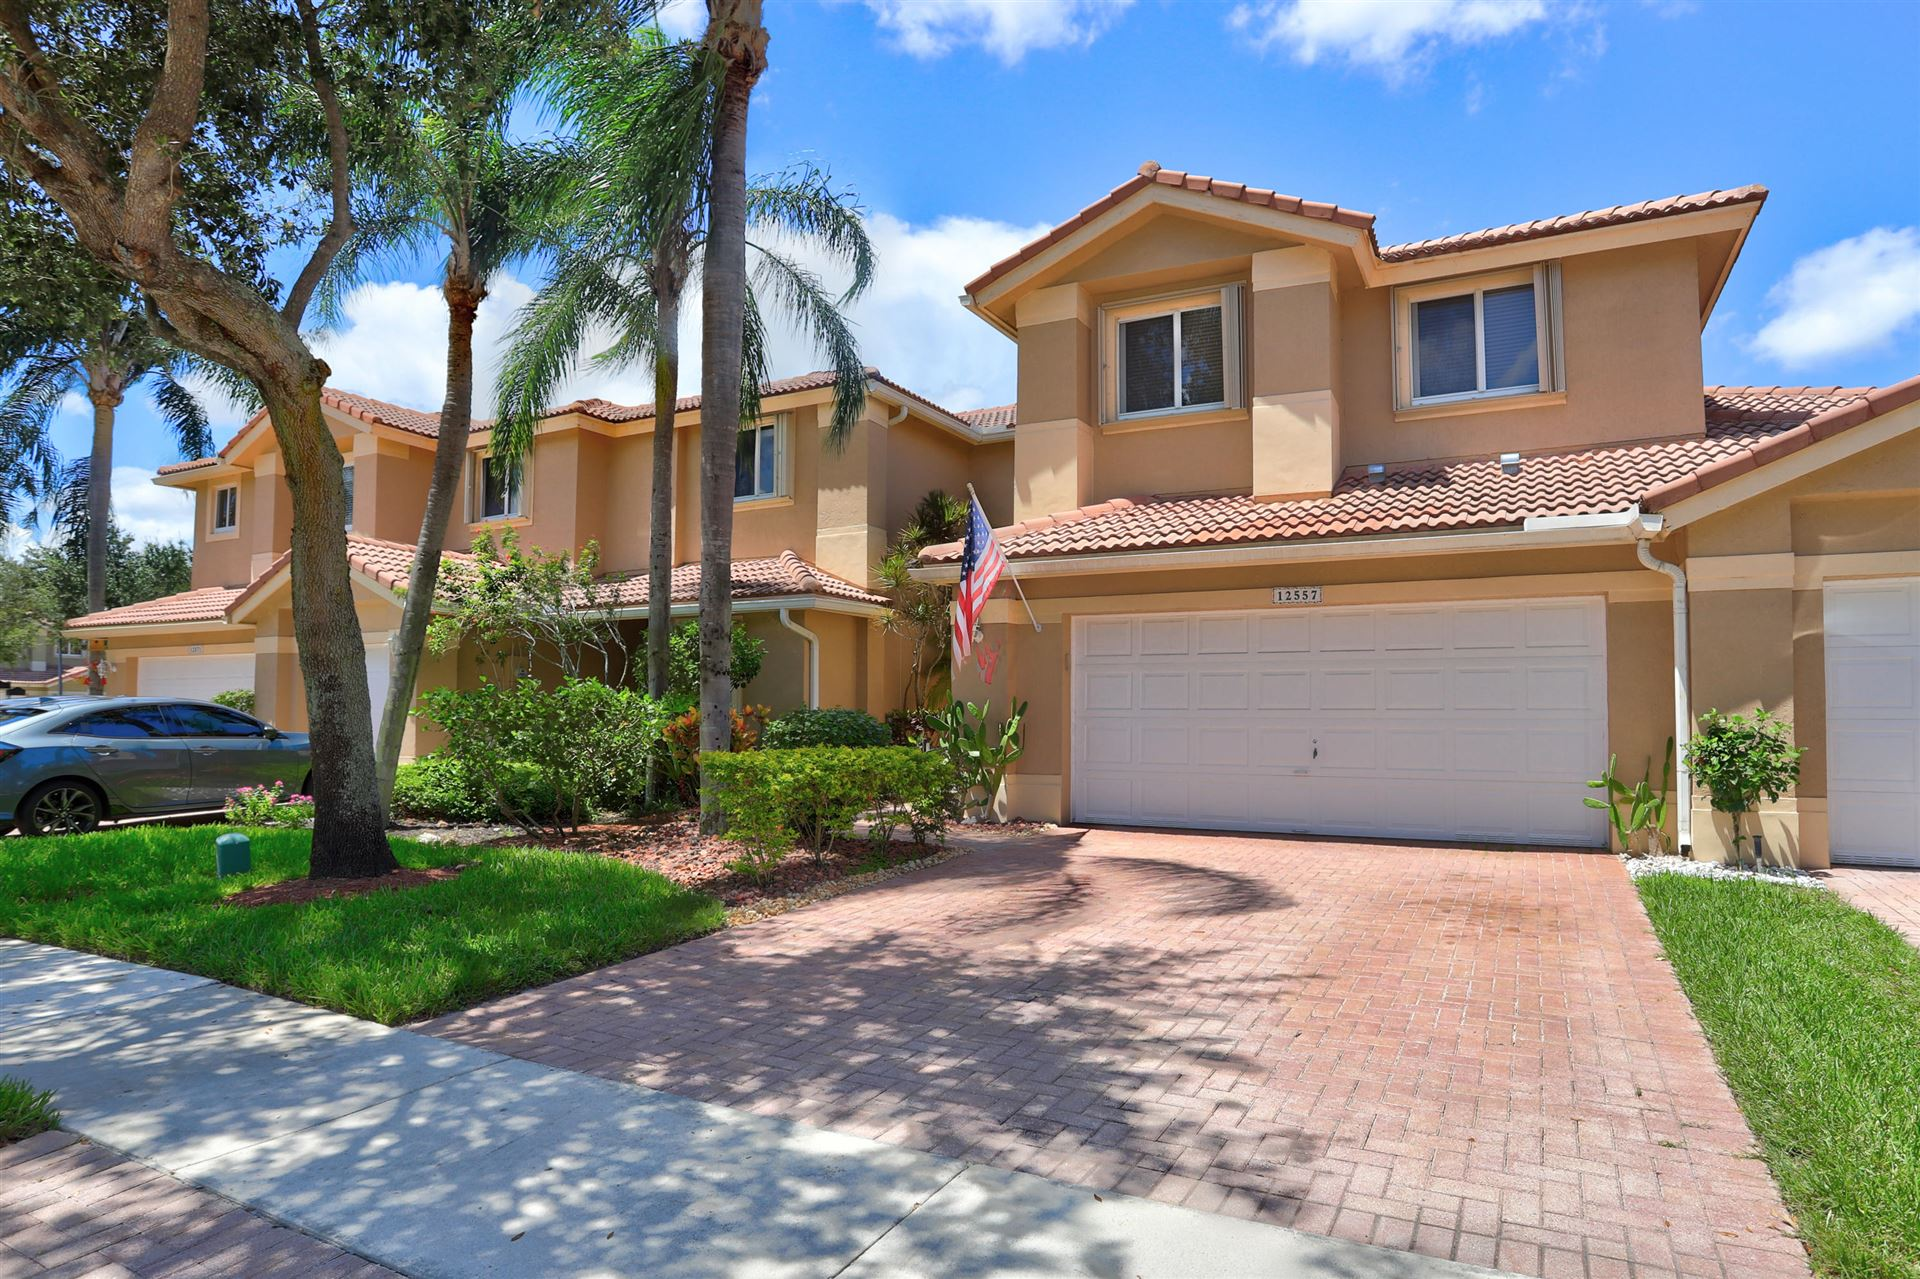 12557 NW 57th Court, Coral Springs, FL 33076 - #: RX-10645105